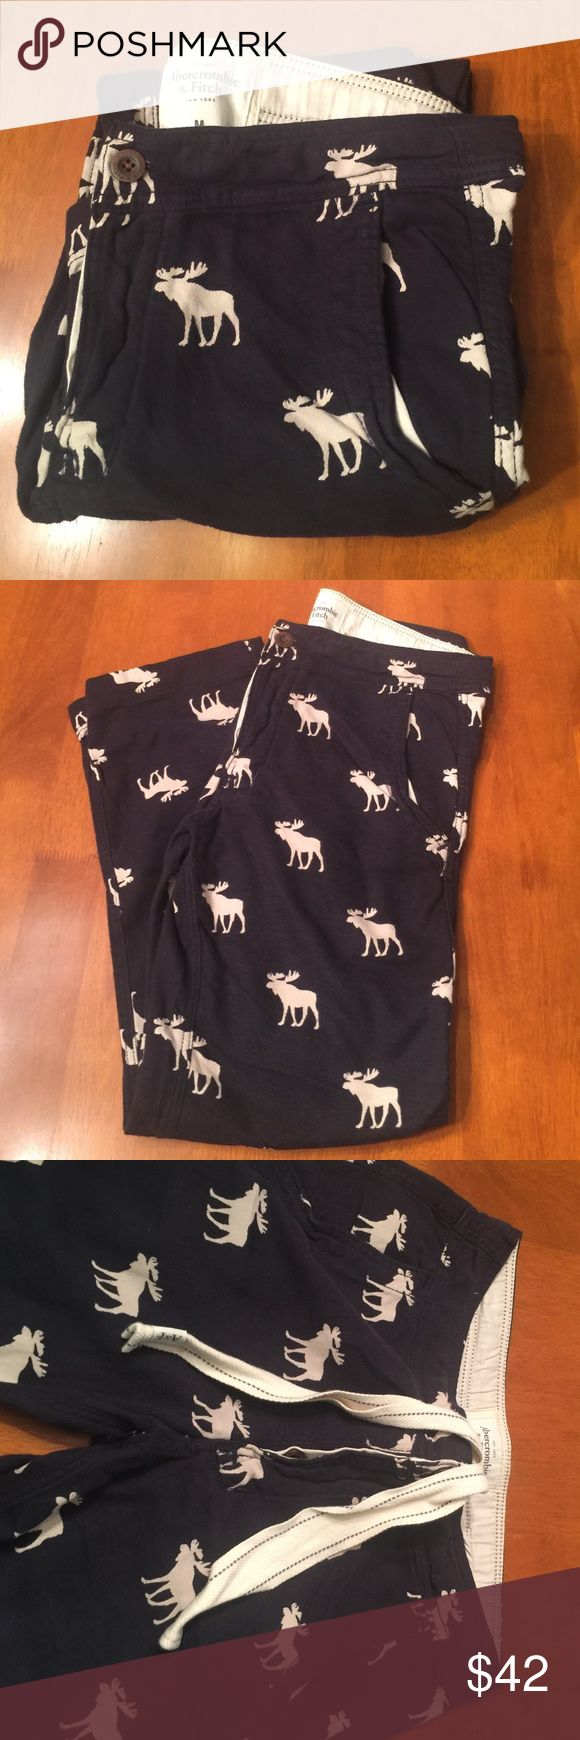 Abercrombie RARE Moose Lounge Pants Medium NWOT Abercrombie vintage men's lounge pants.  Discontinued and hard to find. Size is medium. NWOT.  Very cool 😎 looking sleep pants. Abercrombie & Fitch Other